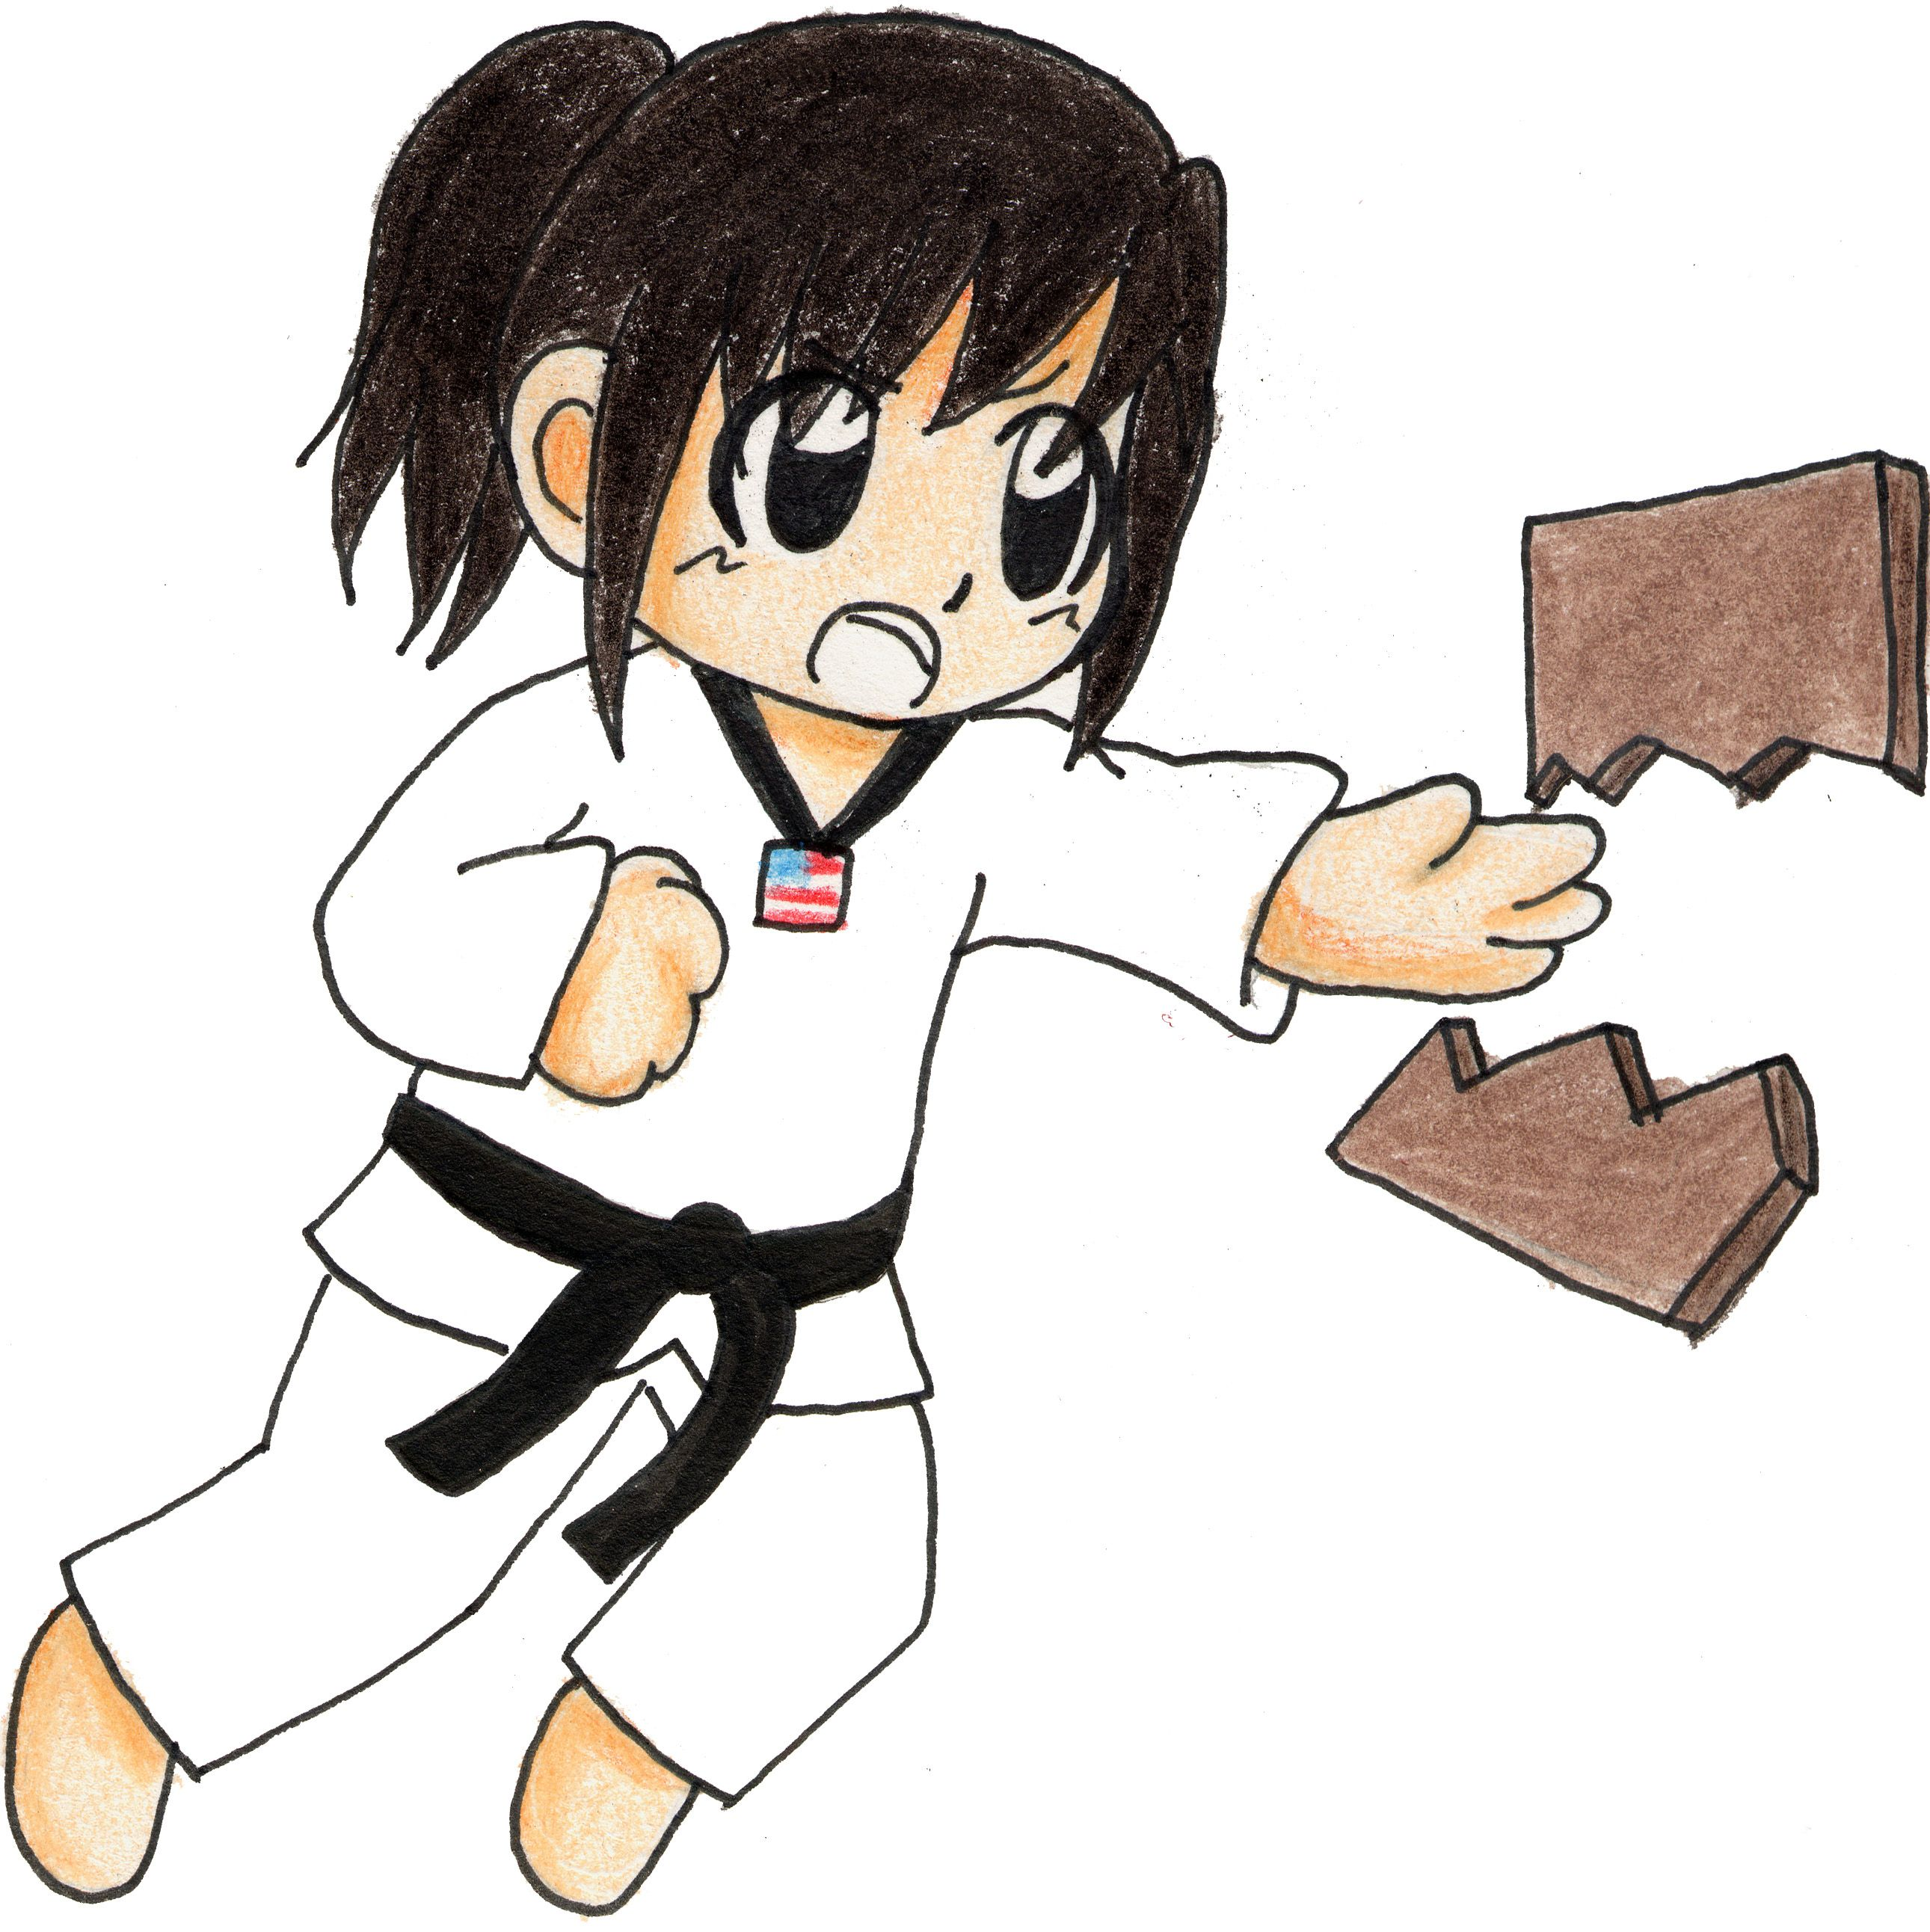 taekwondo clip art free - Google Search | ART DRAWING/PAINTING ...